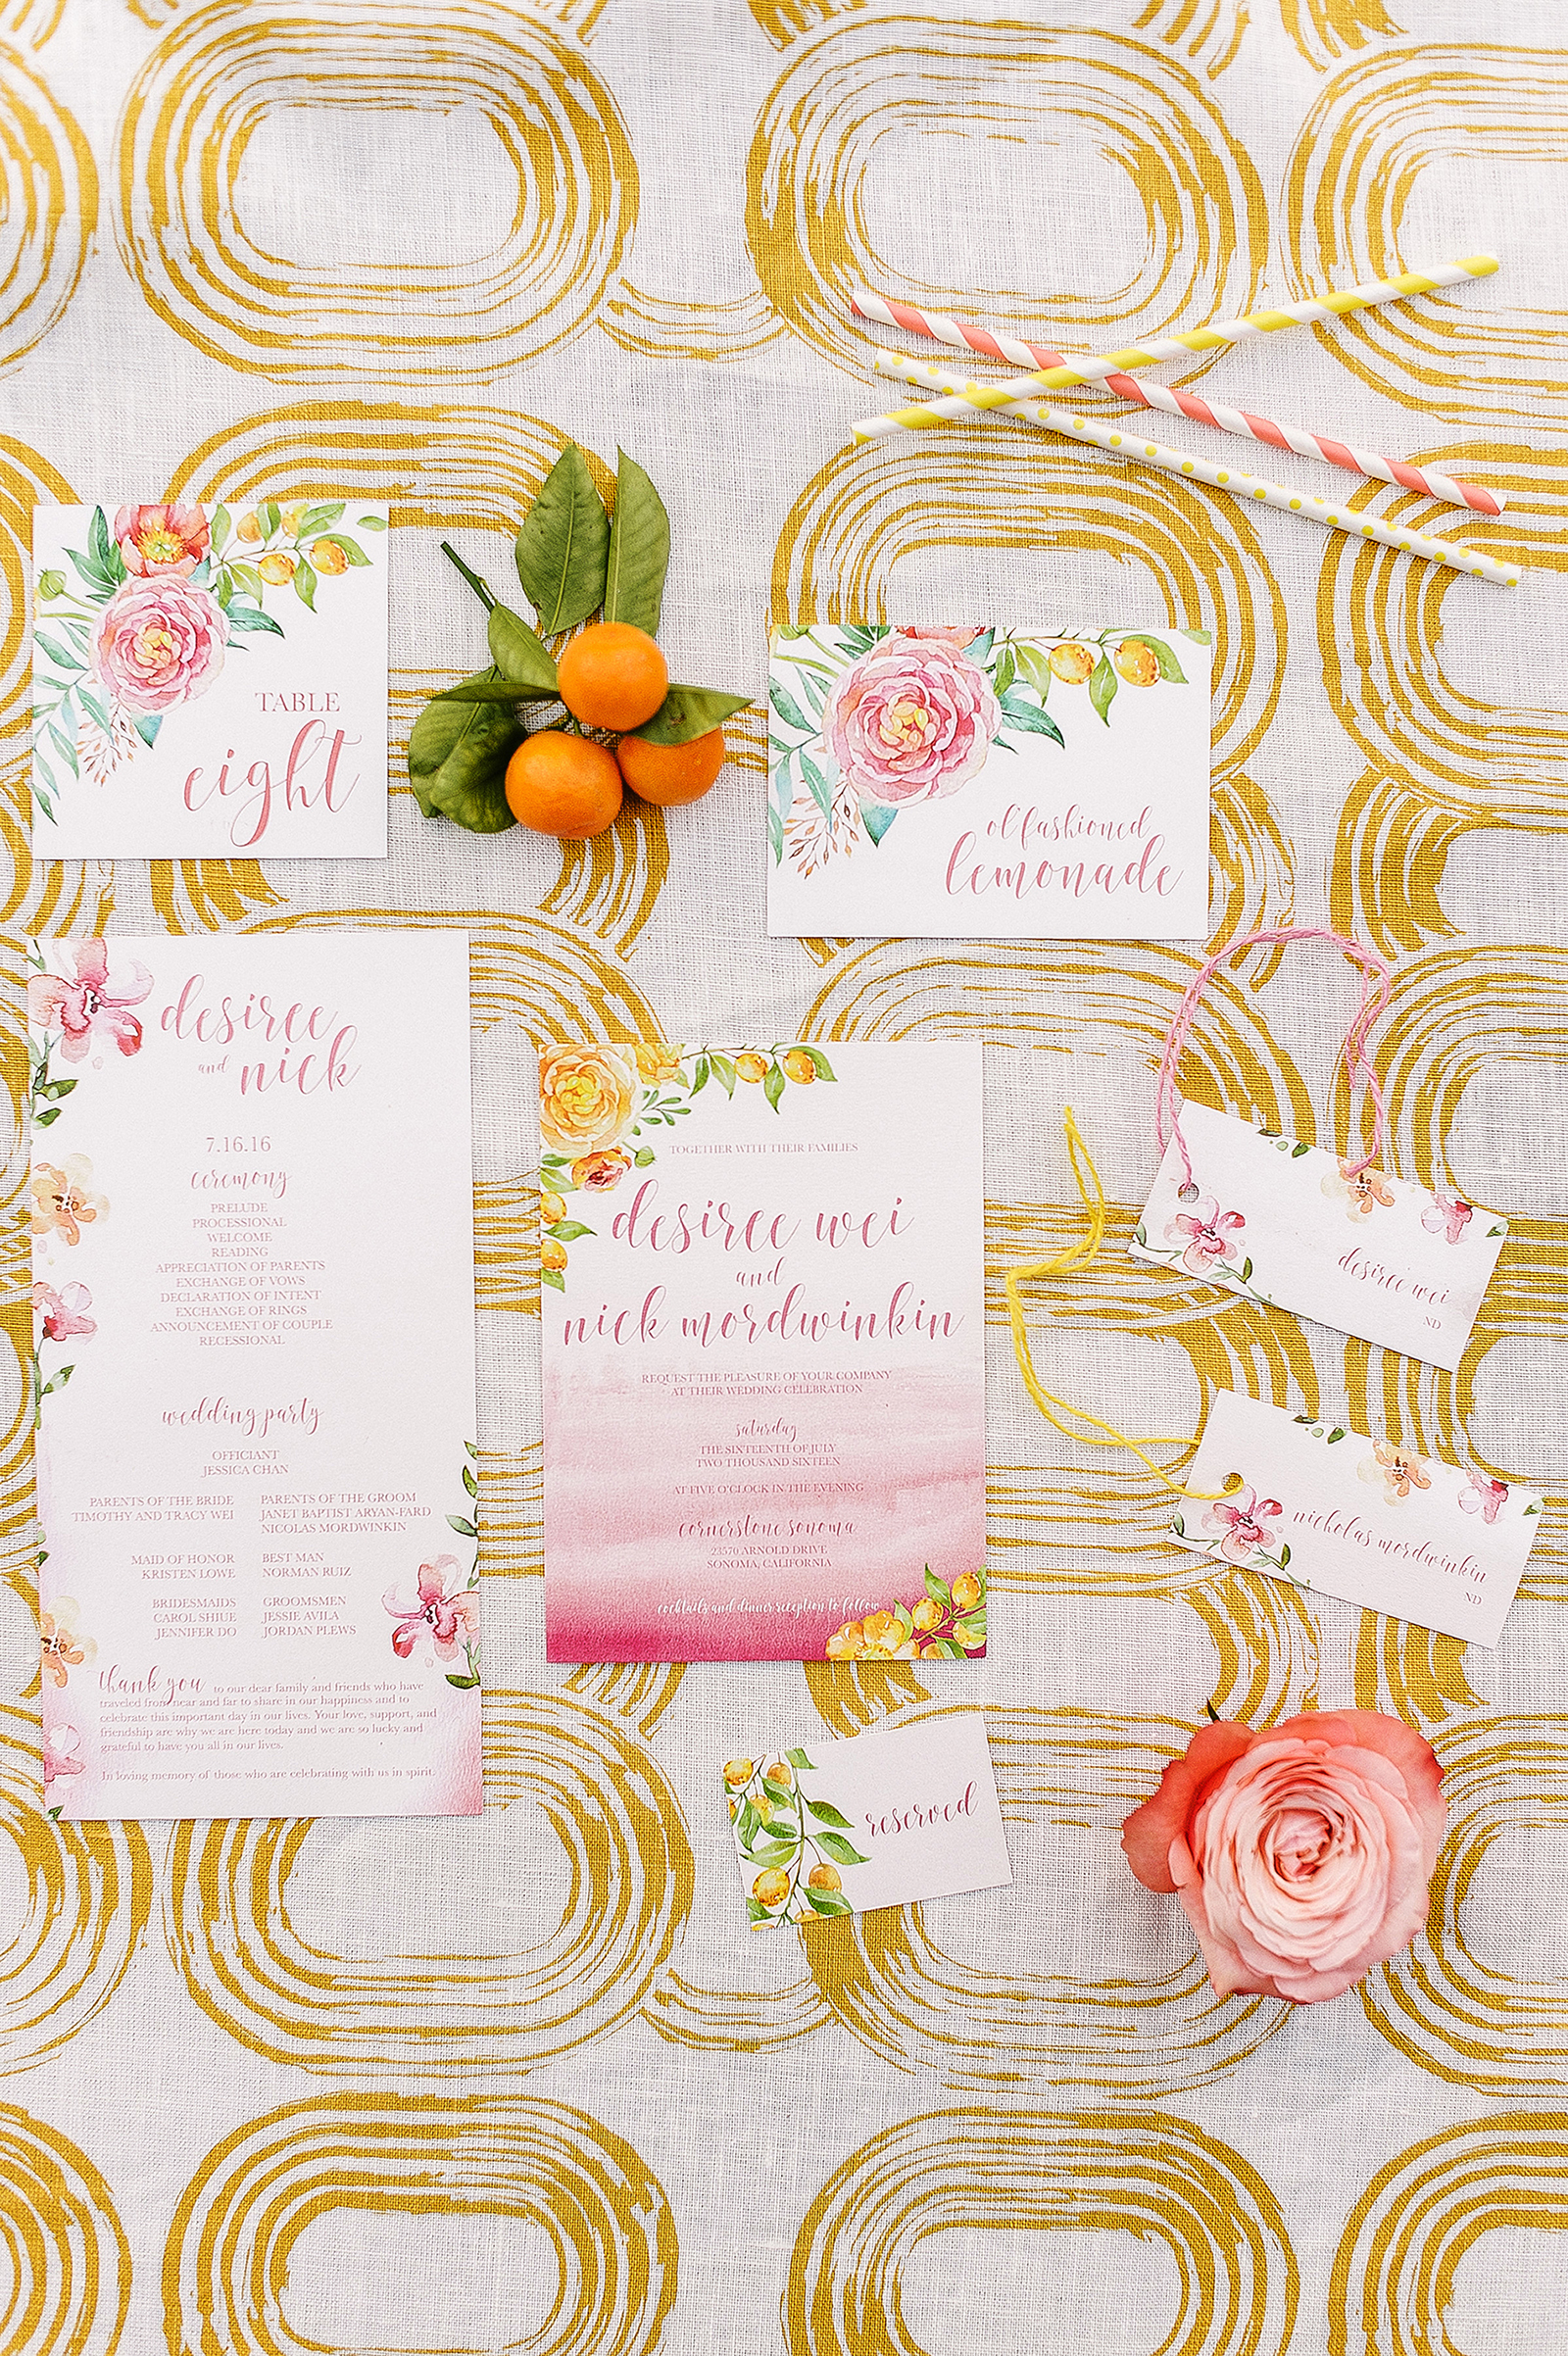 floral stationery with citrus details